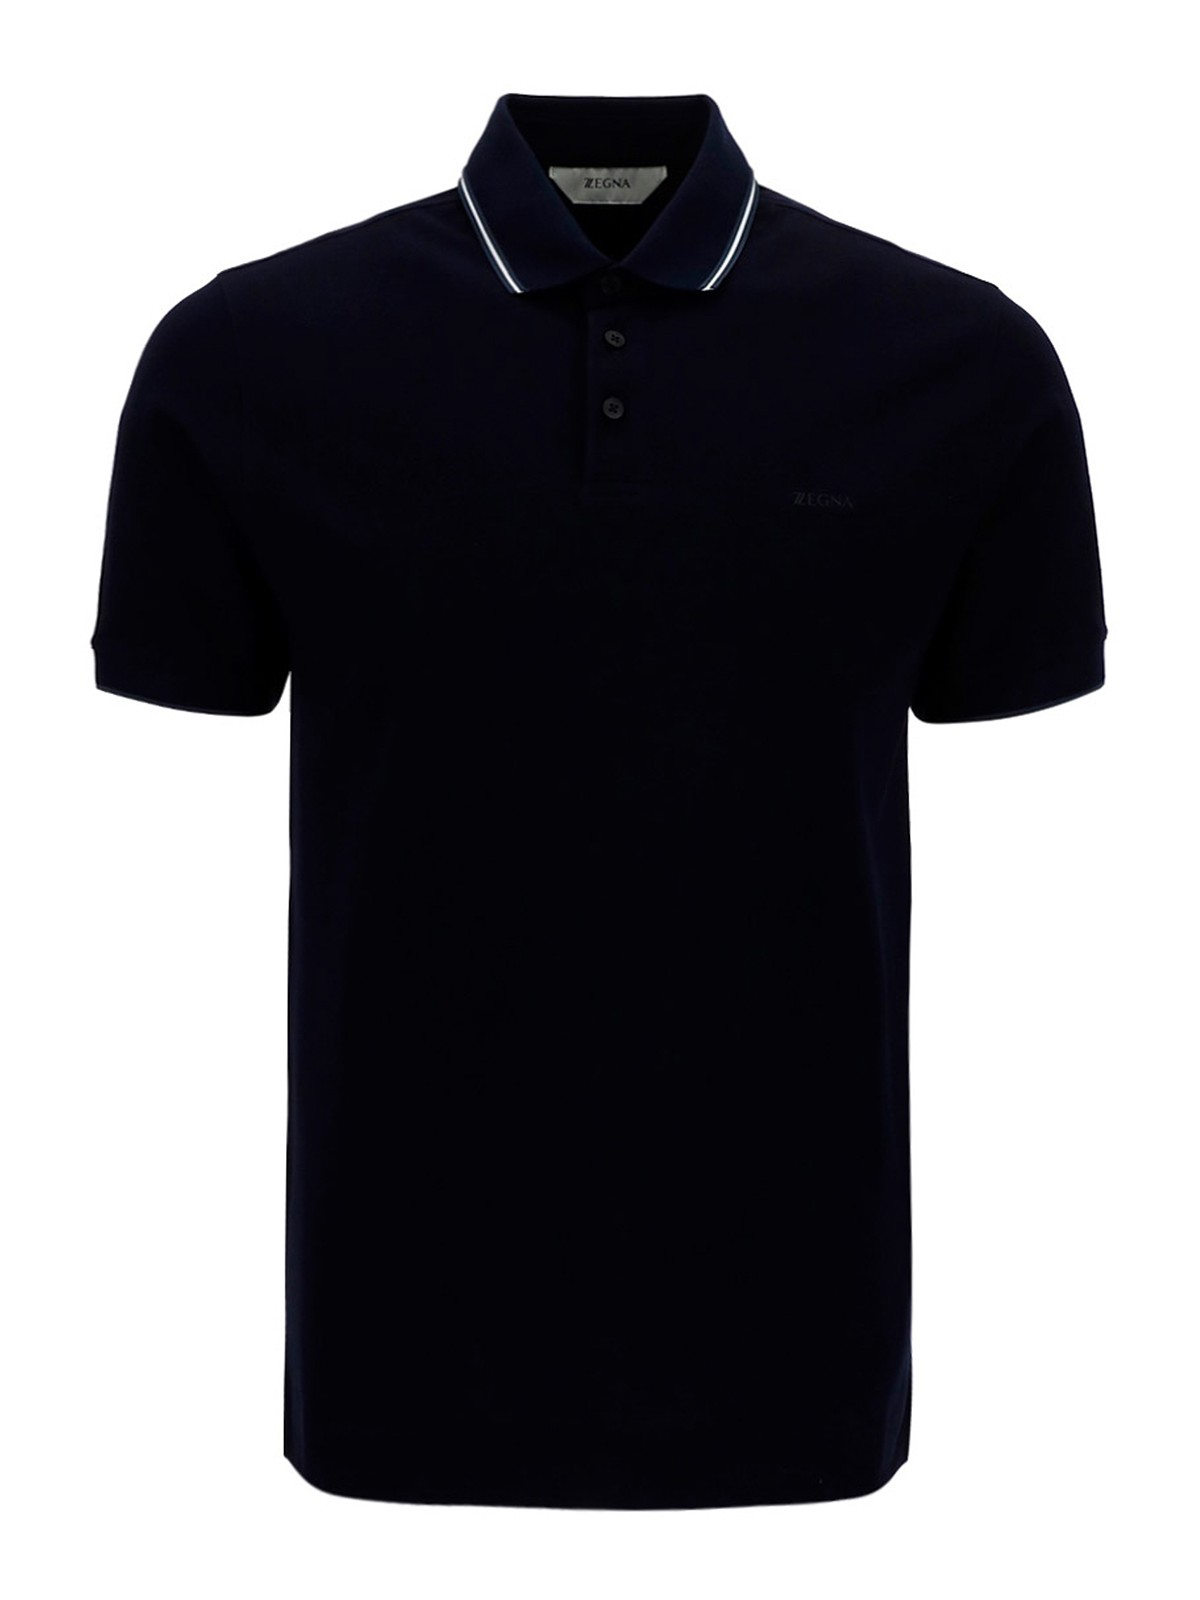 Z Zegna RUBBER LOGO COTTON POLO